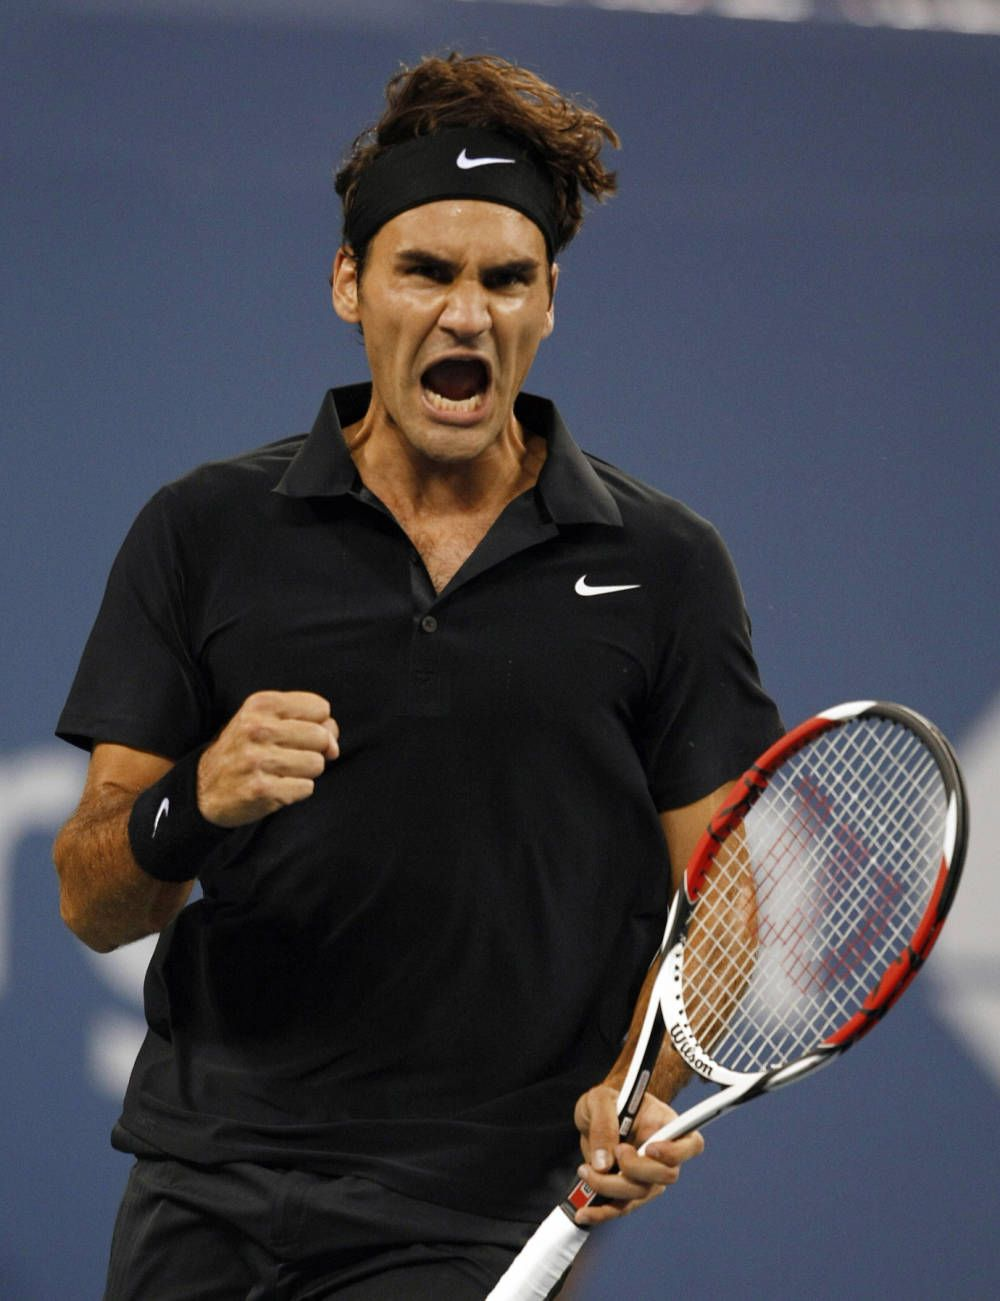 Us Open Style Roger Federer Tennis Clothes Tennis Players Female